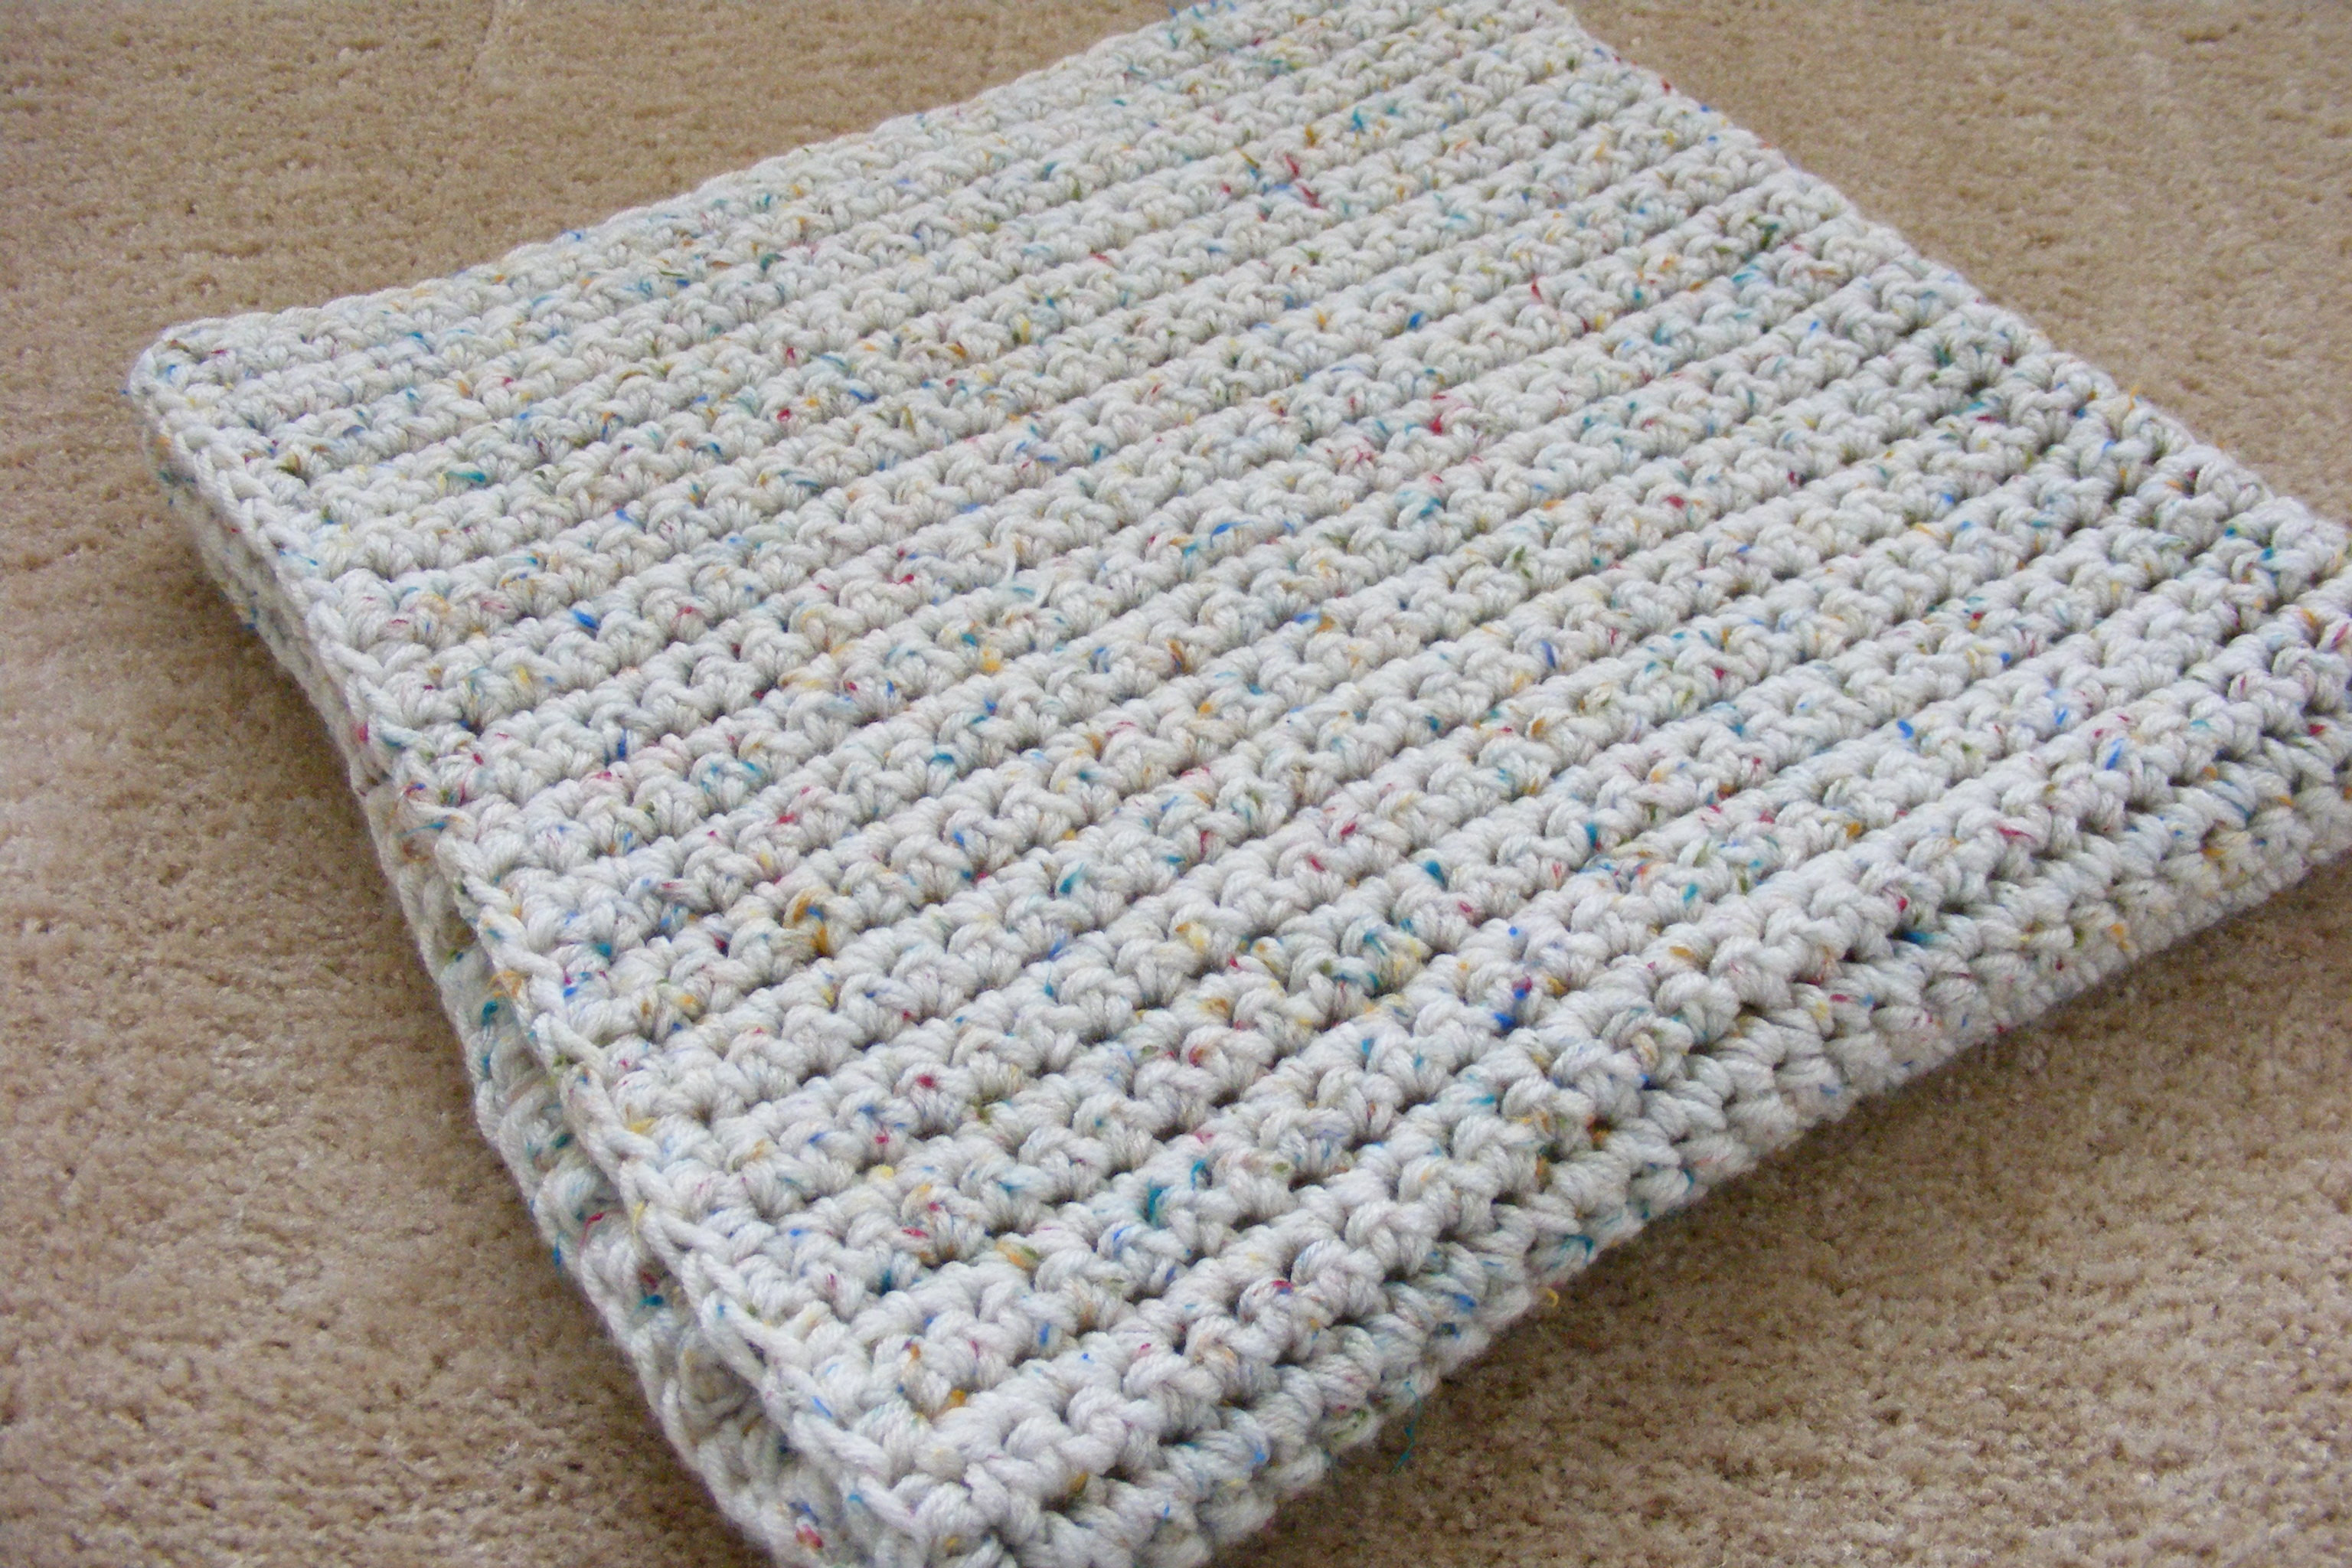 Crochet Stitches for Baby Blankets Best Of Single Crochet Baby Blanket Of Amazing 45 Pics Crochet Stitches for Baby Blankets